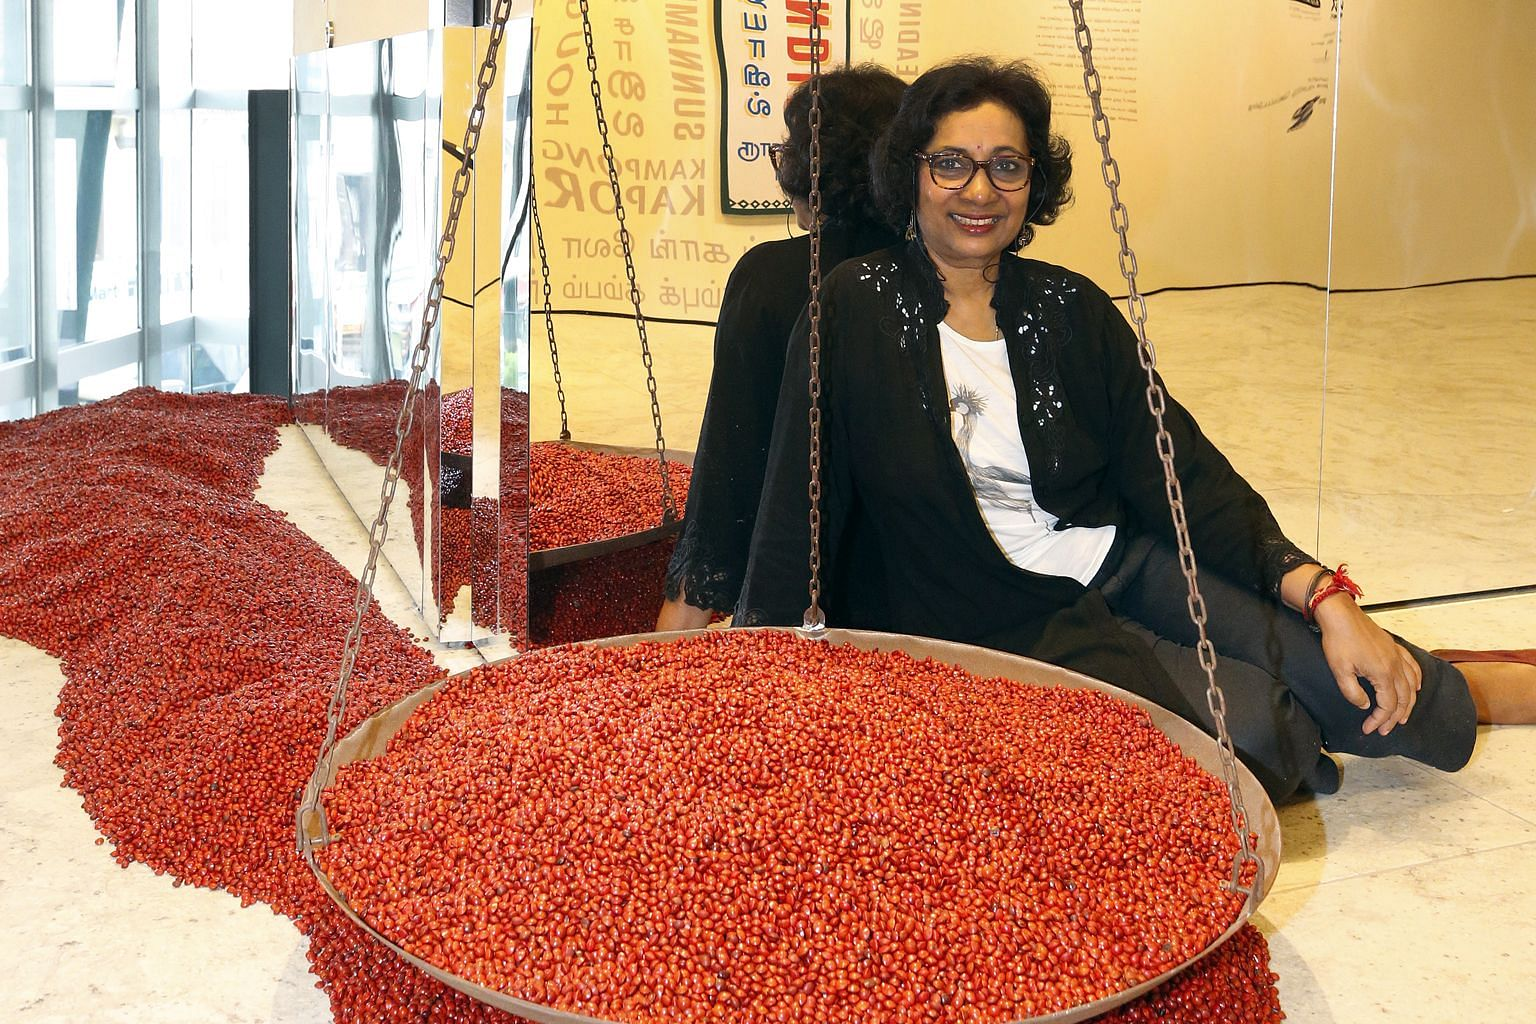 Artist Kumari Nahappan with her art installation, The Weighing Scales, at the Indian Heritage Centre.